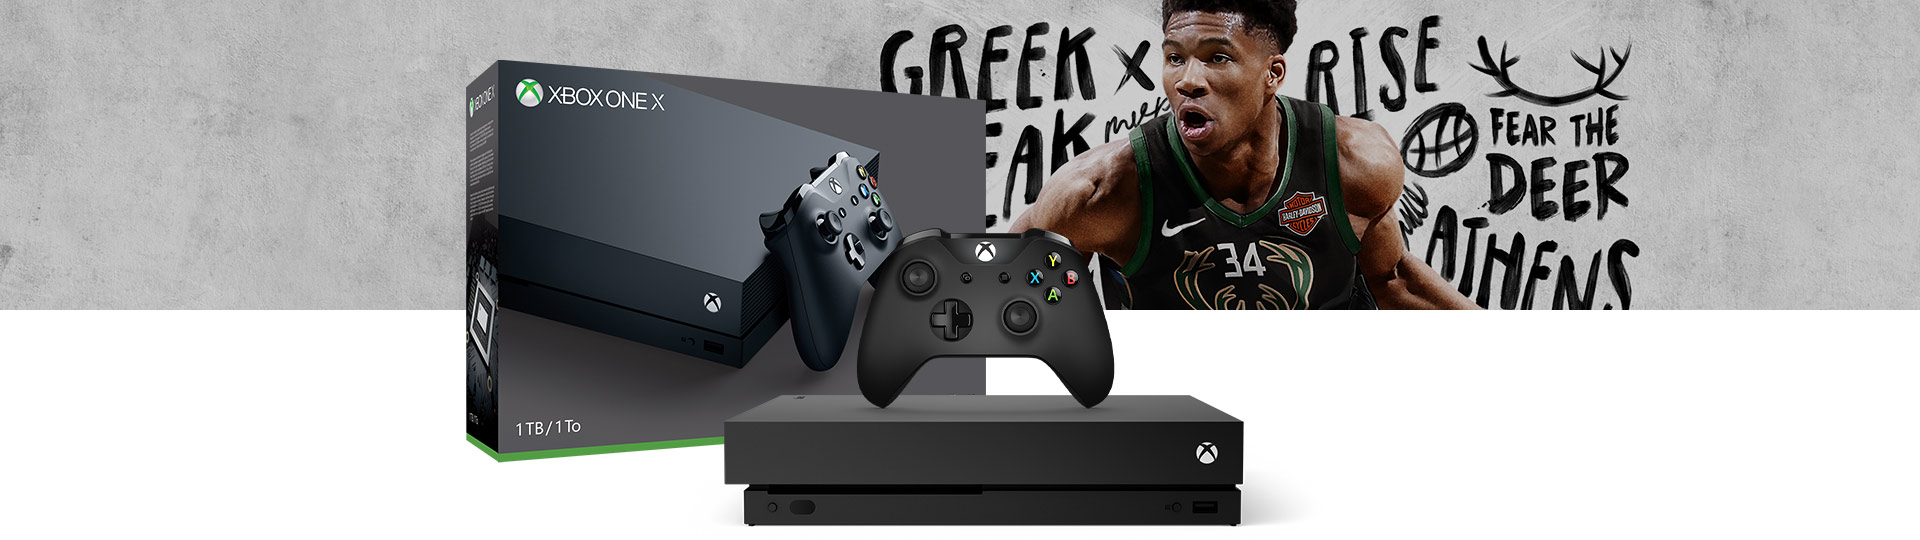 Xbox One X and Controller next to the Xbox One X NBA 2K19 1 terabyte product box